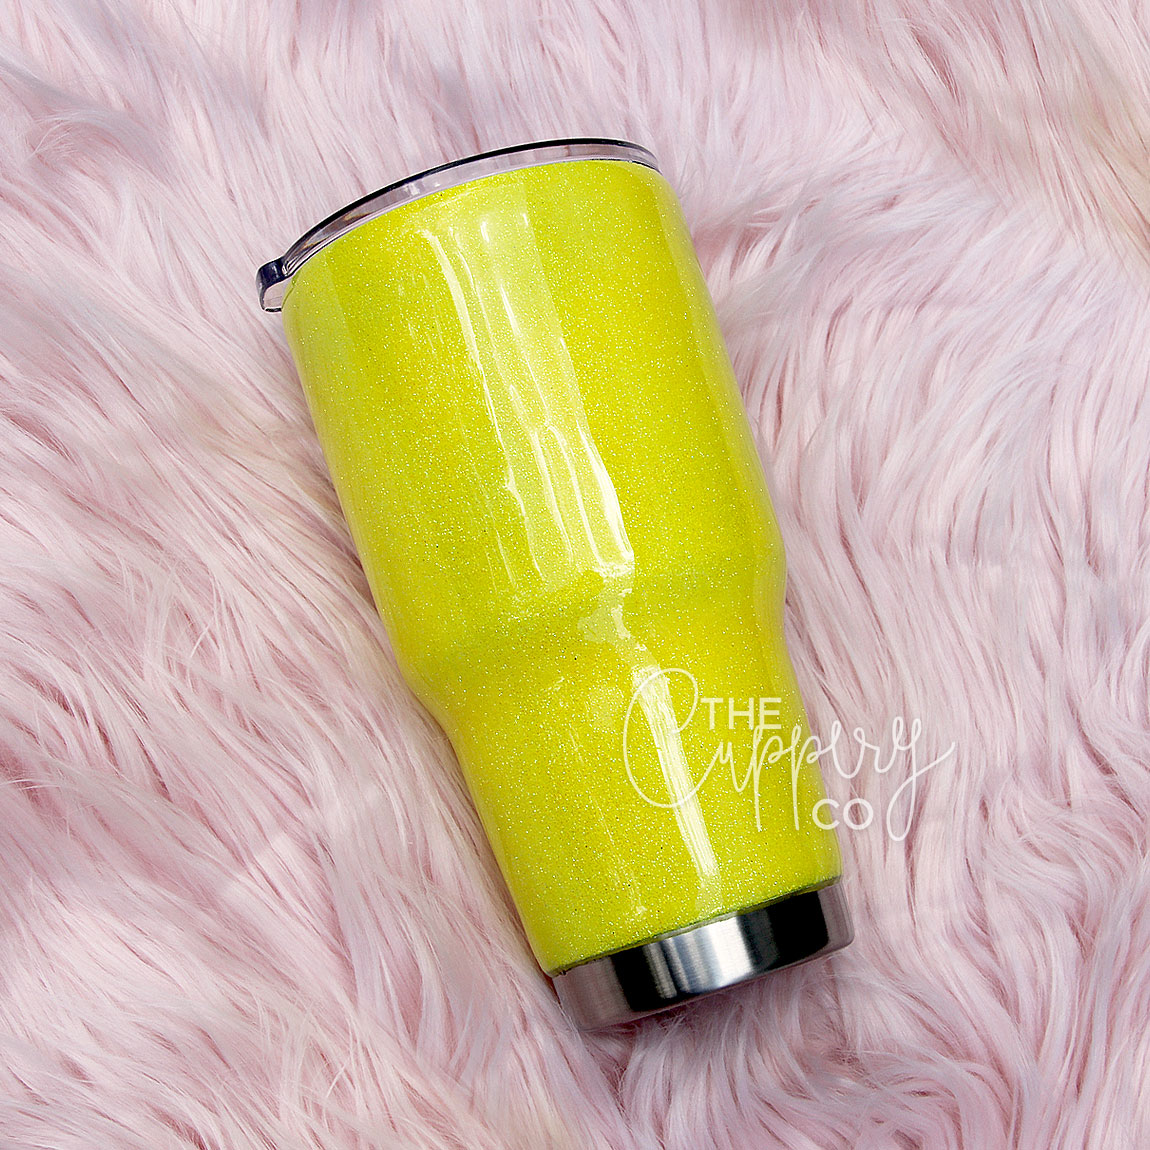 3fd582444a4 Yellow Stainless Steel Glitter Tumbler - YETI Ozark - The Cuppery Co